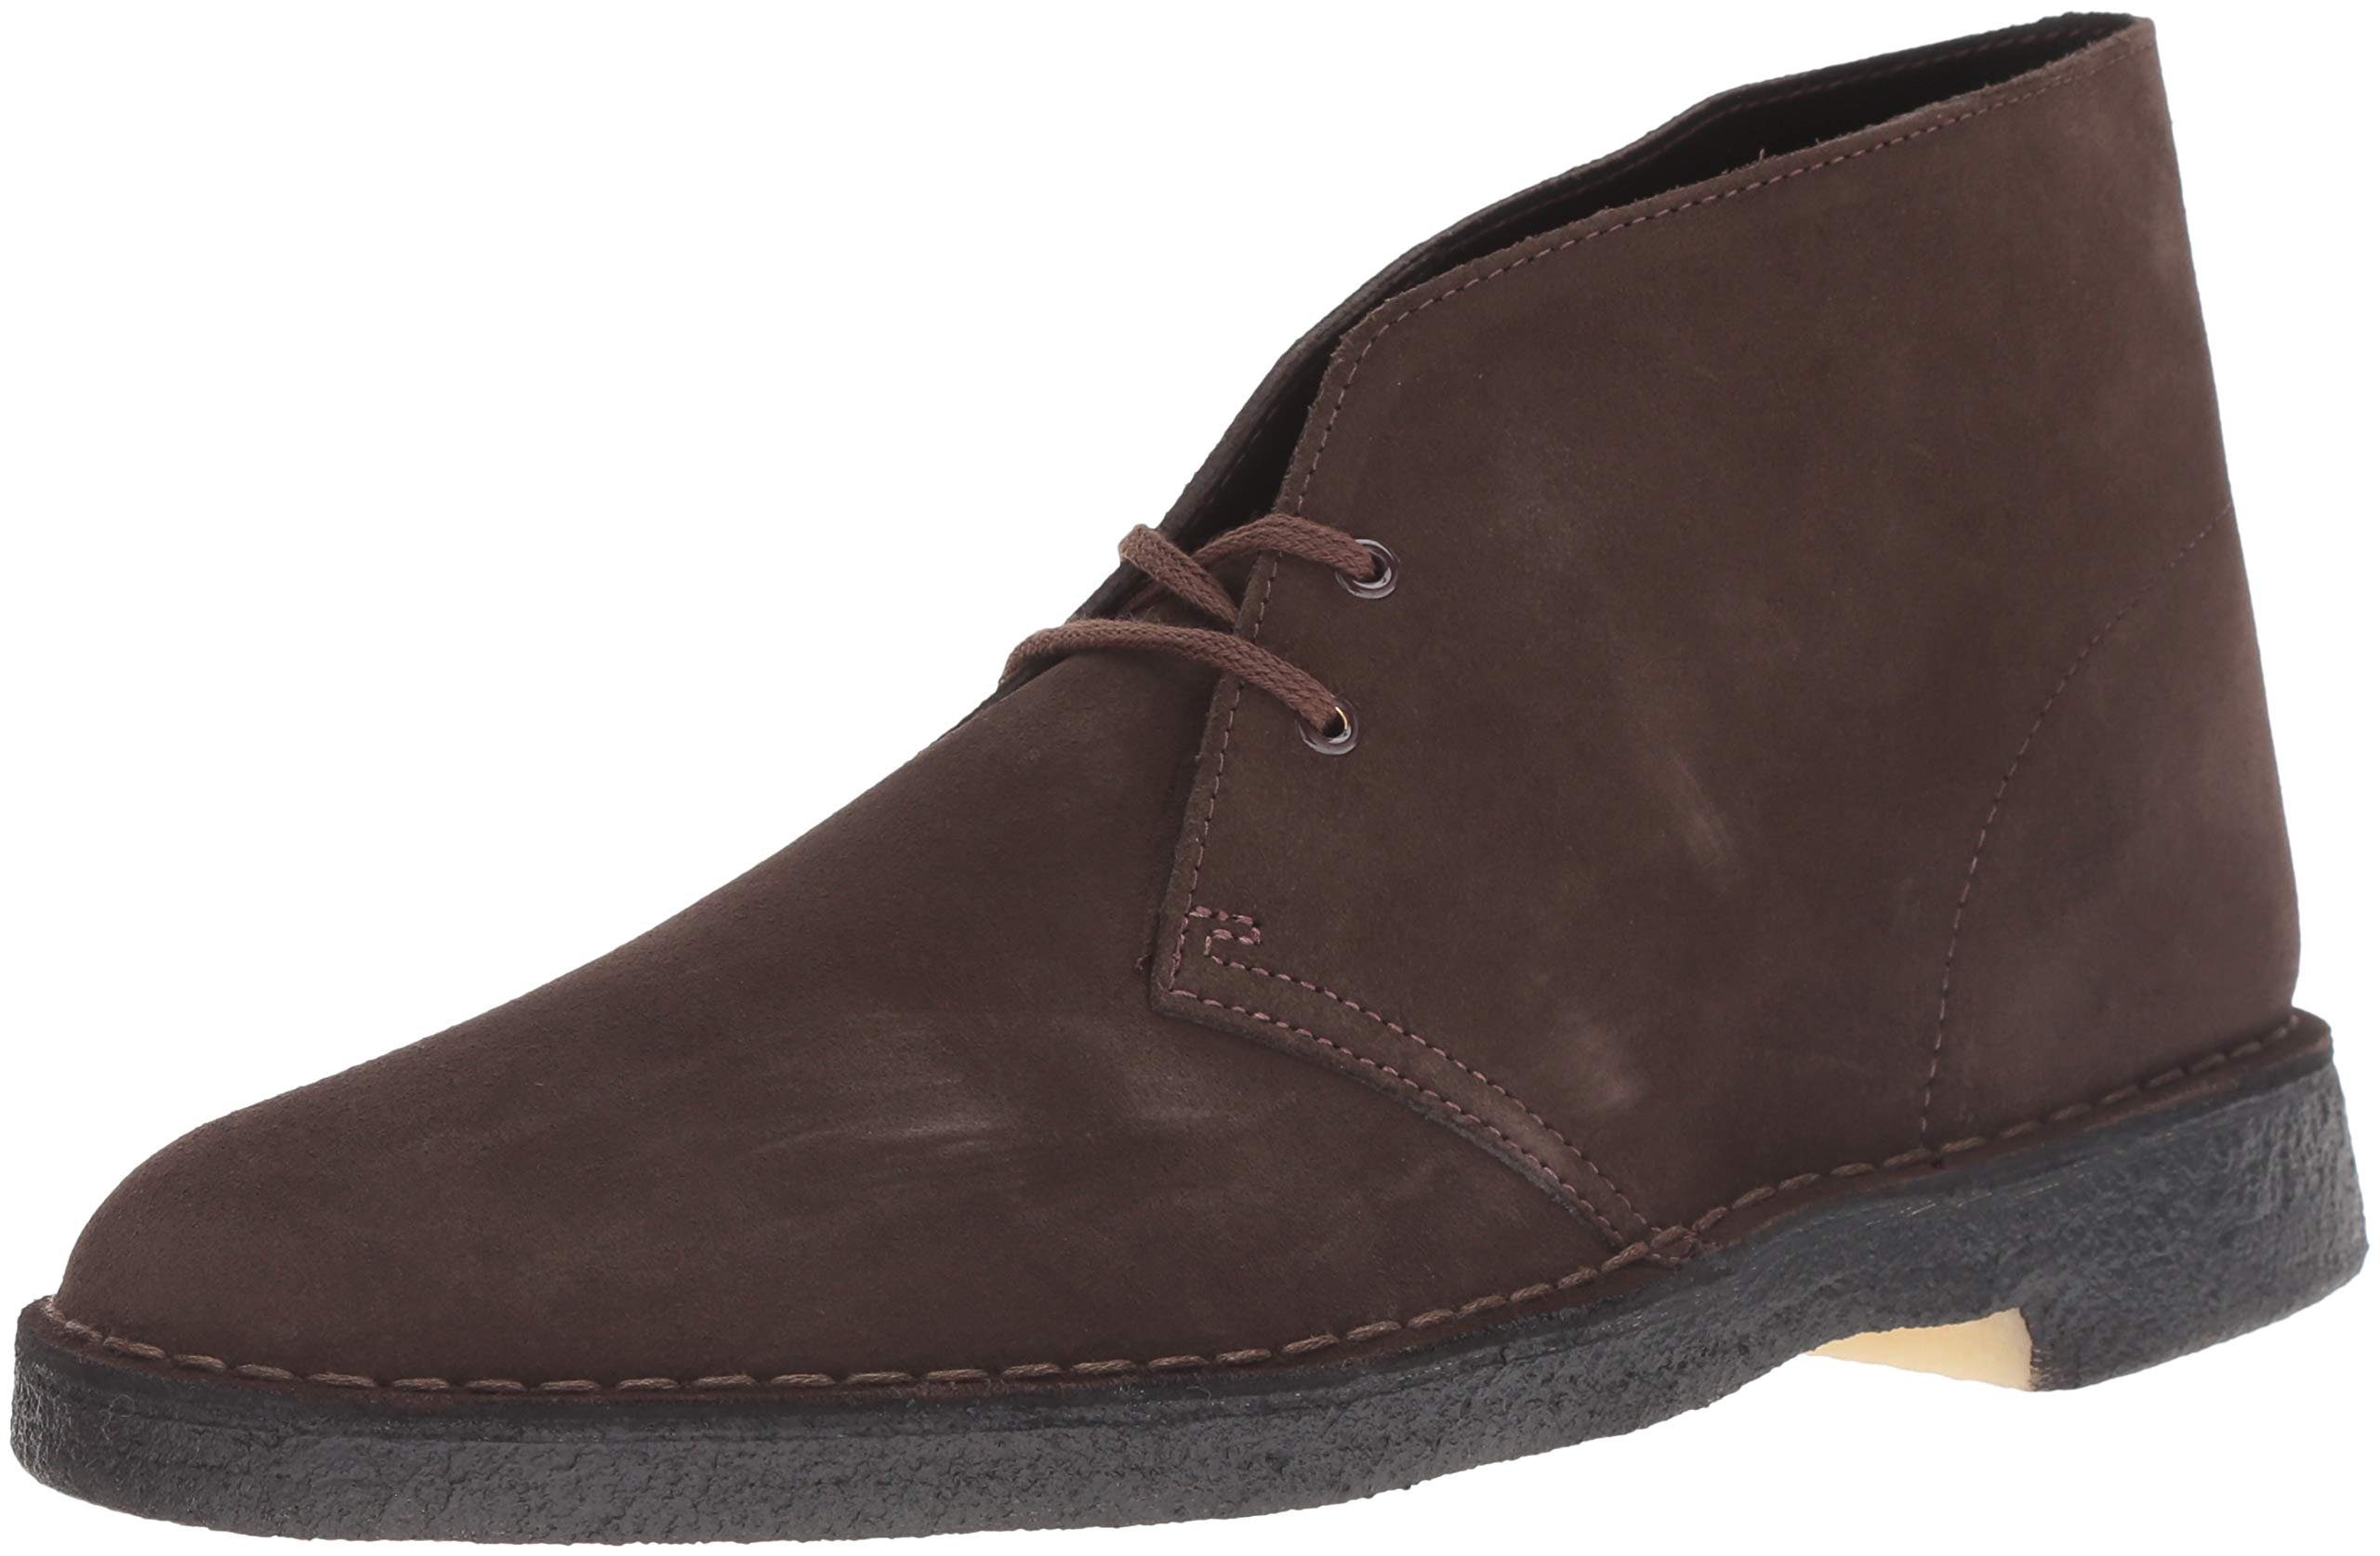 CLARKS Originals Men's Desert Boot,Brown Suede,10 M US